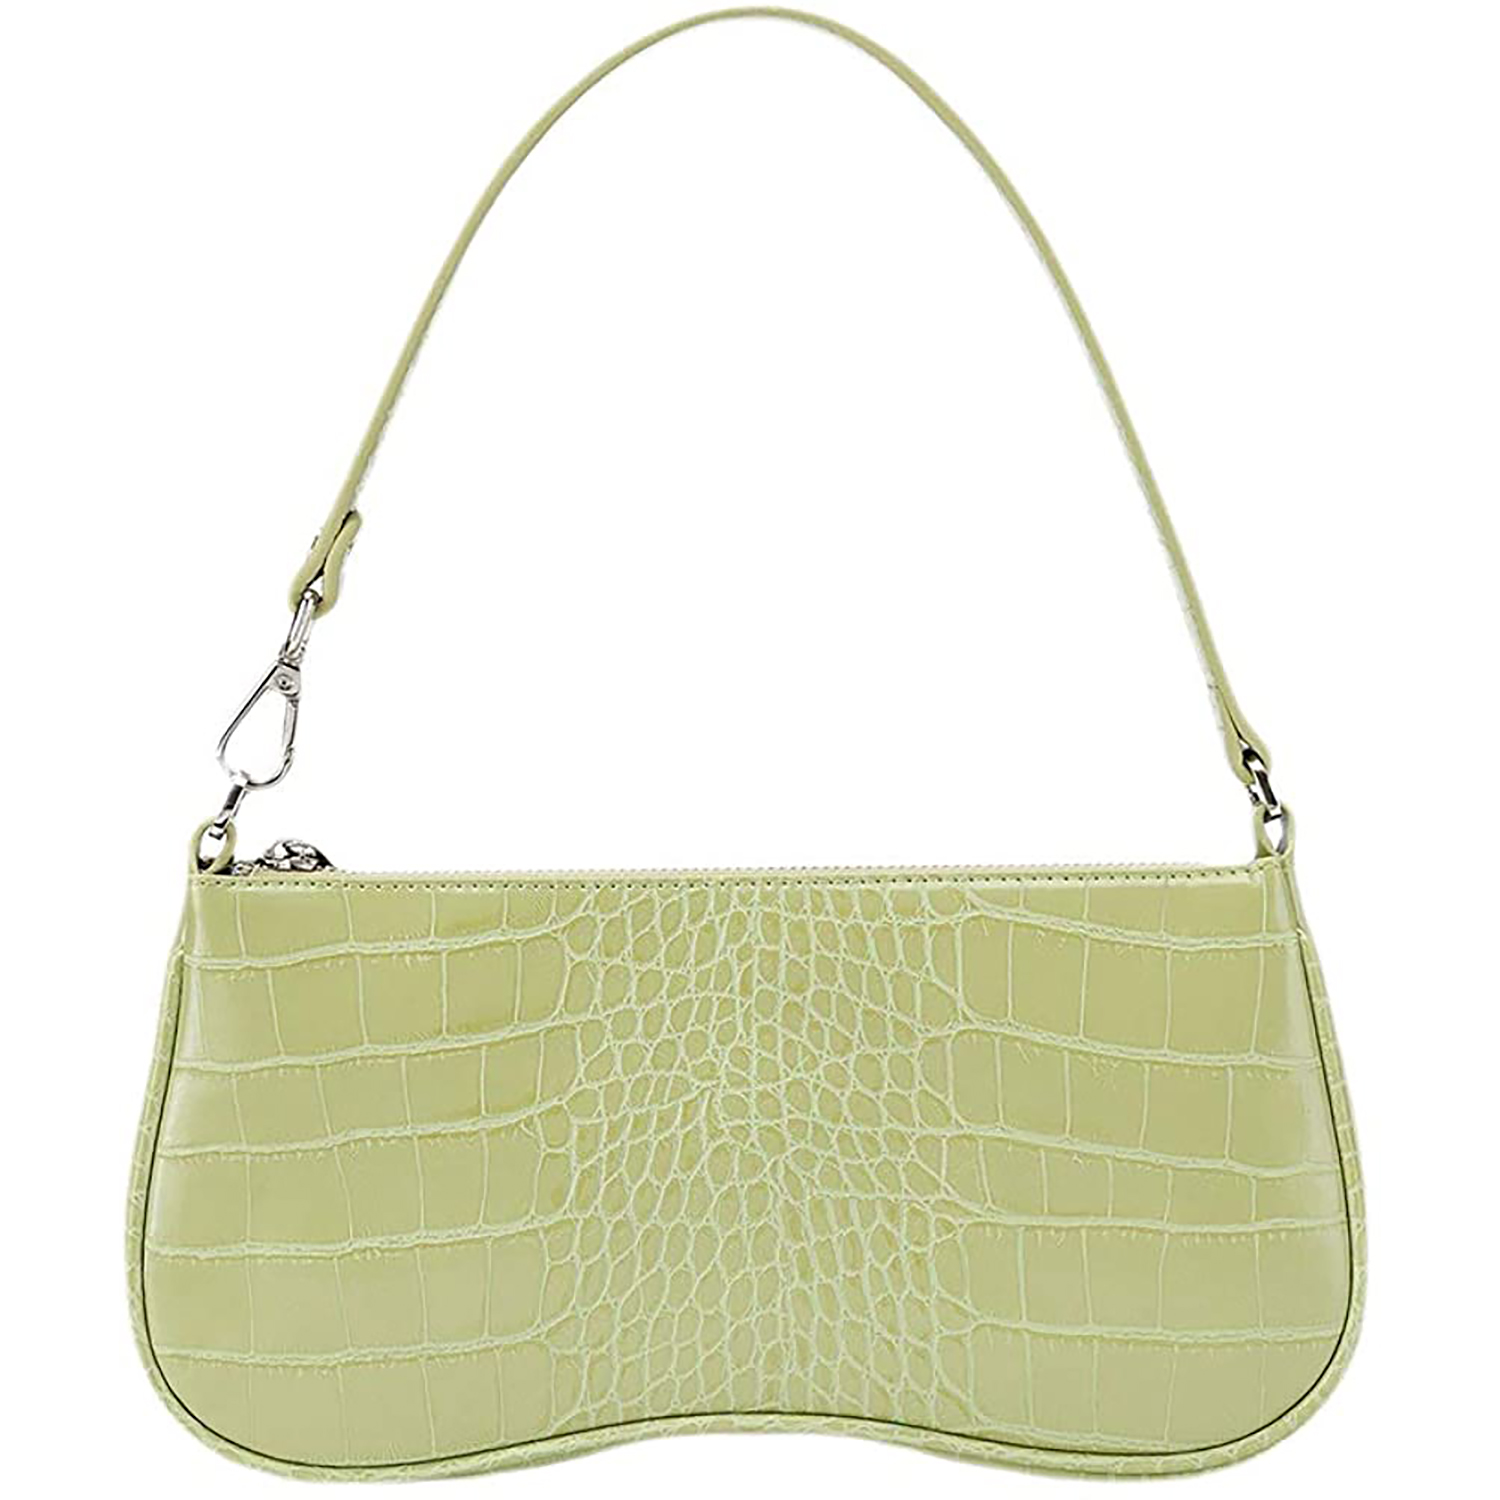 JW PEI vegan leather crocodile purse